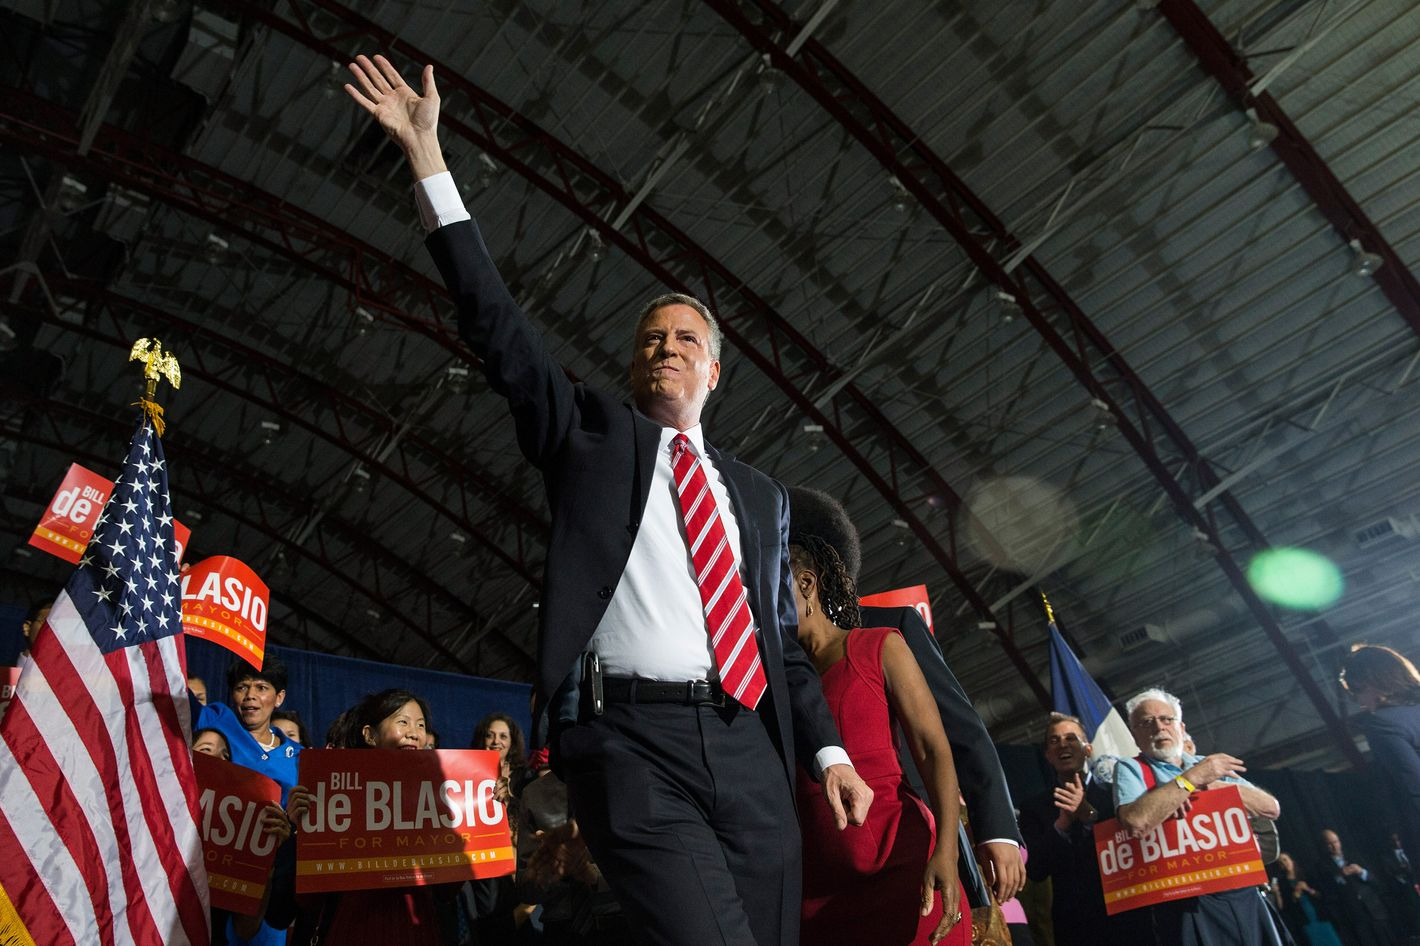 Newly elected New York City Mayor Bill de Blasio waves to the crowd at his election night party on November 5, 2013 in New York City. De Blasio beat out Republican candidate Joe Lhota and will succeed Michael Bloomberg as the 109th mayor of New York City. He is the first Democratic mayor in 20 years.